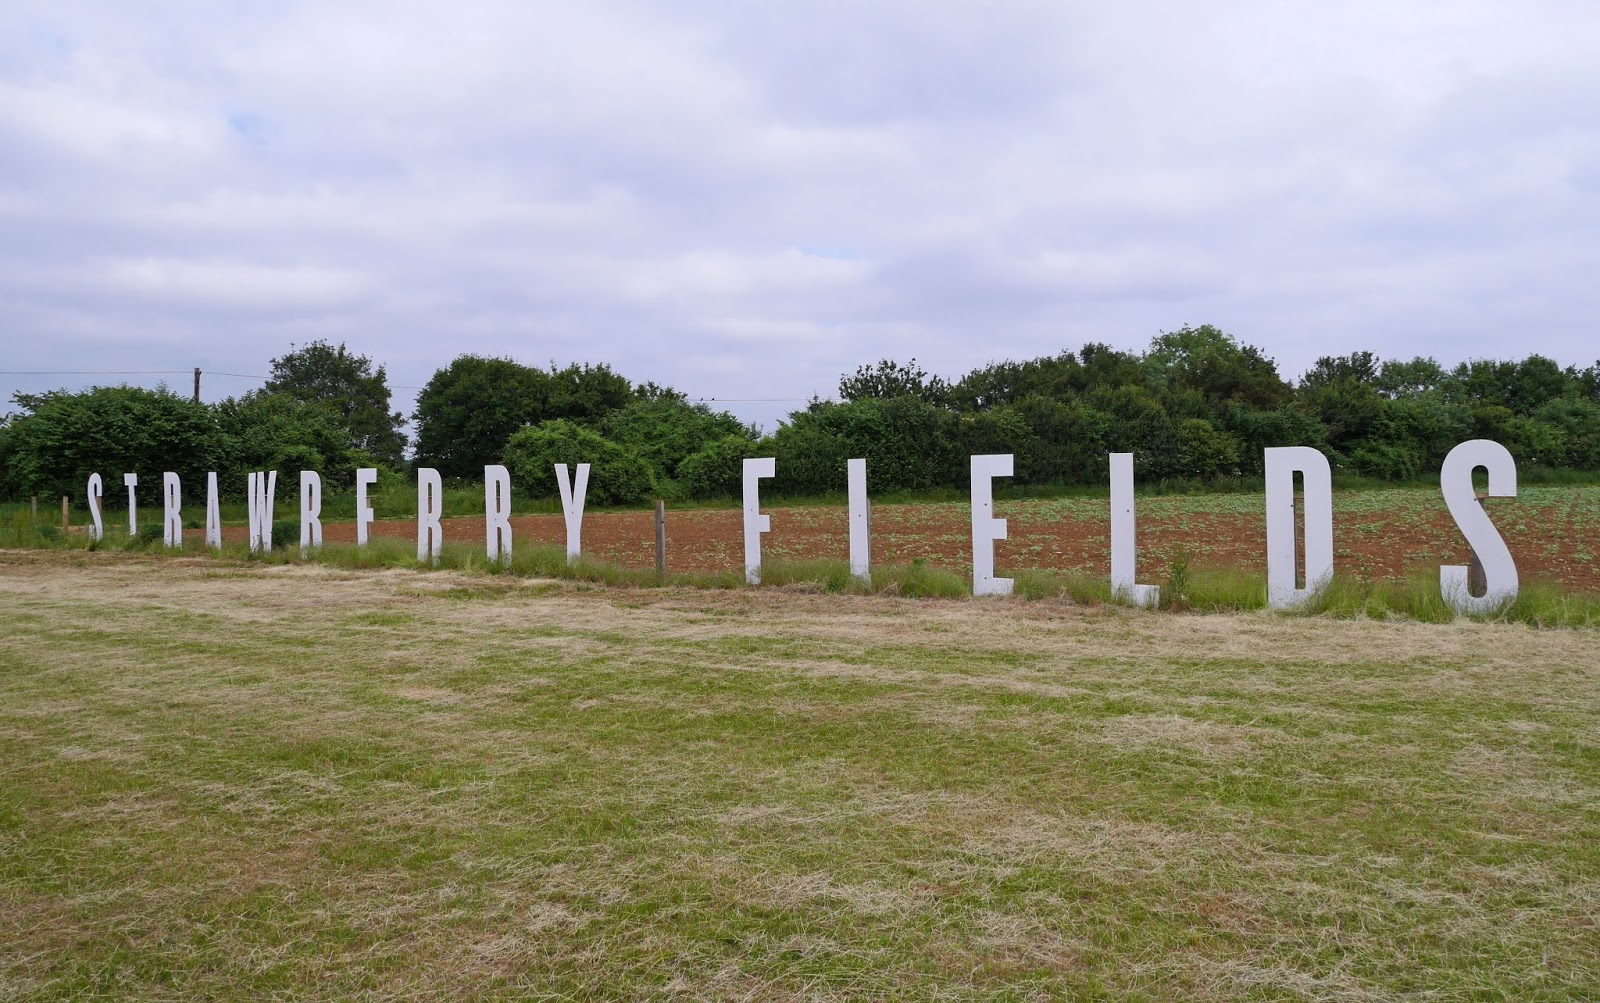 'STRAWBERRY FIELDS' sign at Cammas Hall Fruit Farm in Essex